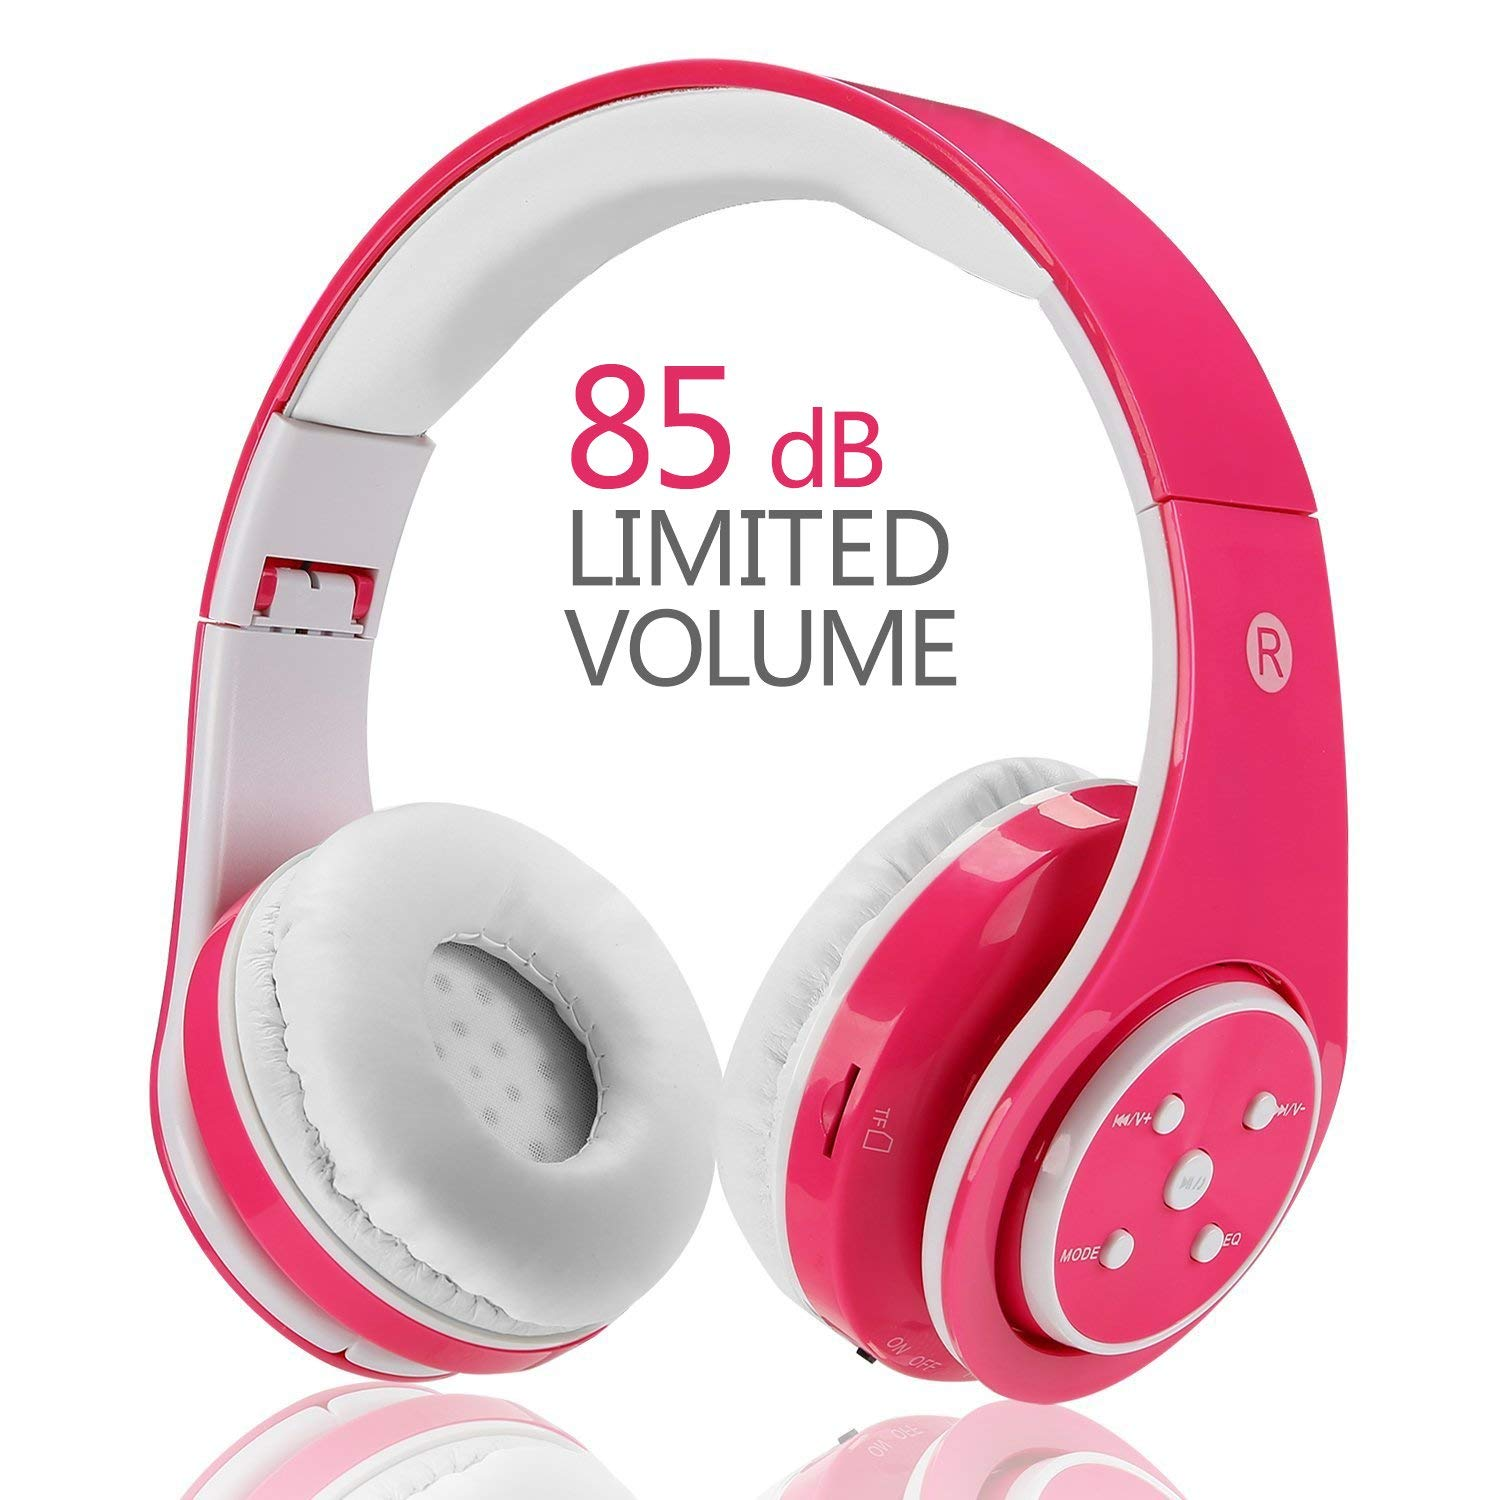 Kids Bluetooth Wireless Headphones,VOTONES Over Ear Children Headphones 85db Volume Limited Foldable Childrens Headset, Stereo Sound,Build-in Mic,Compatible with PC/Tablets/Smartphones (Pink)